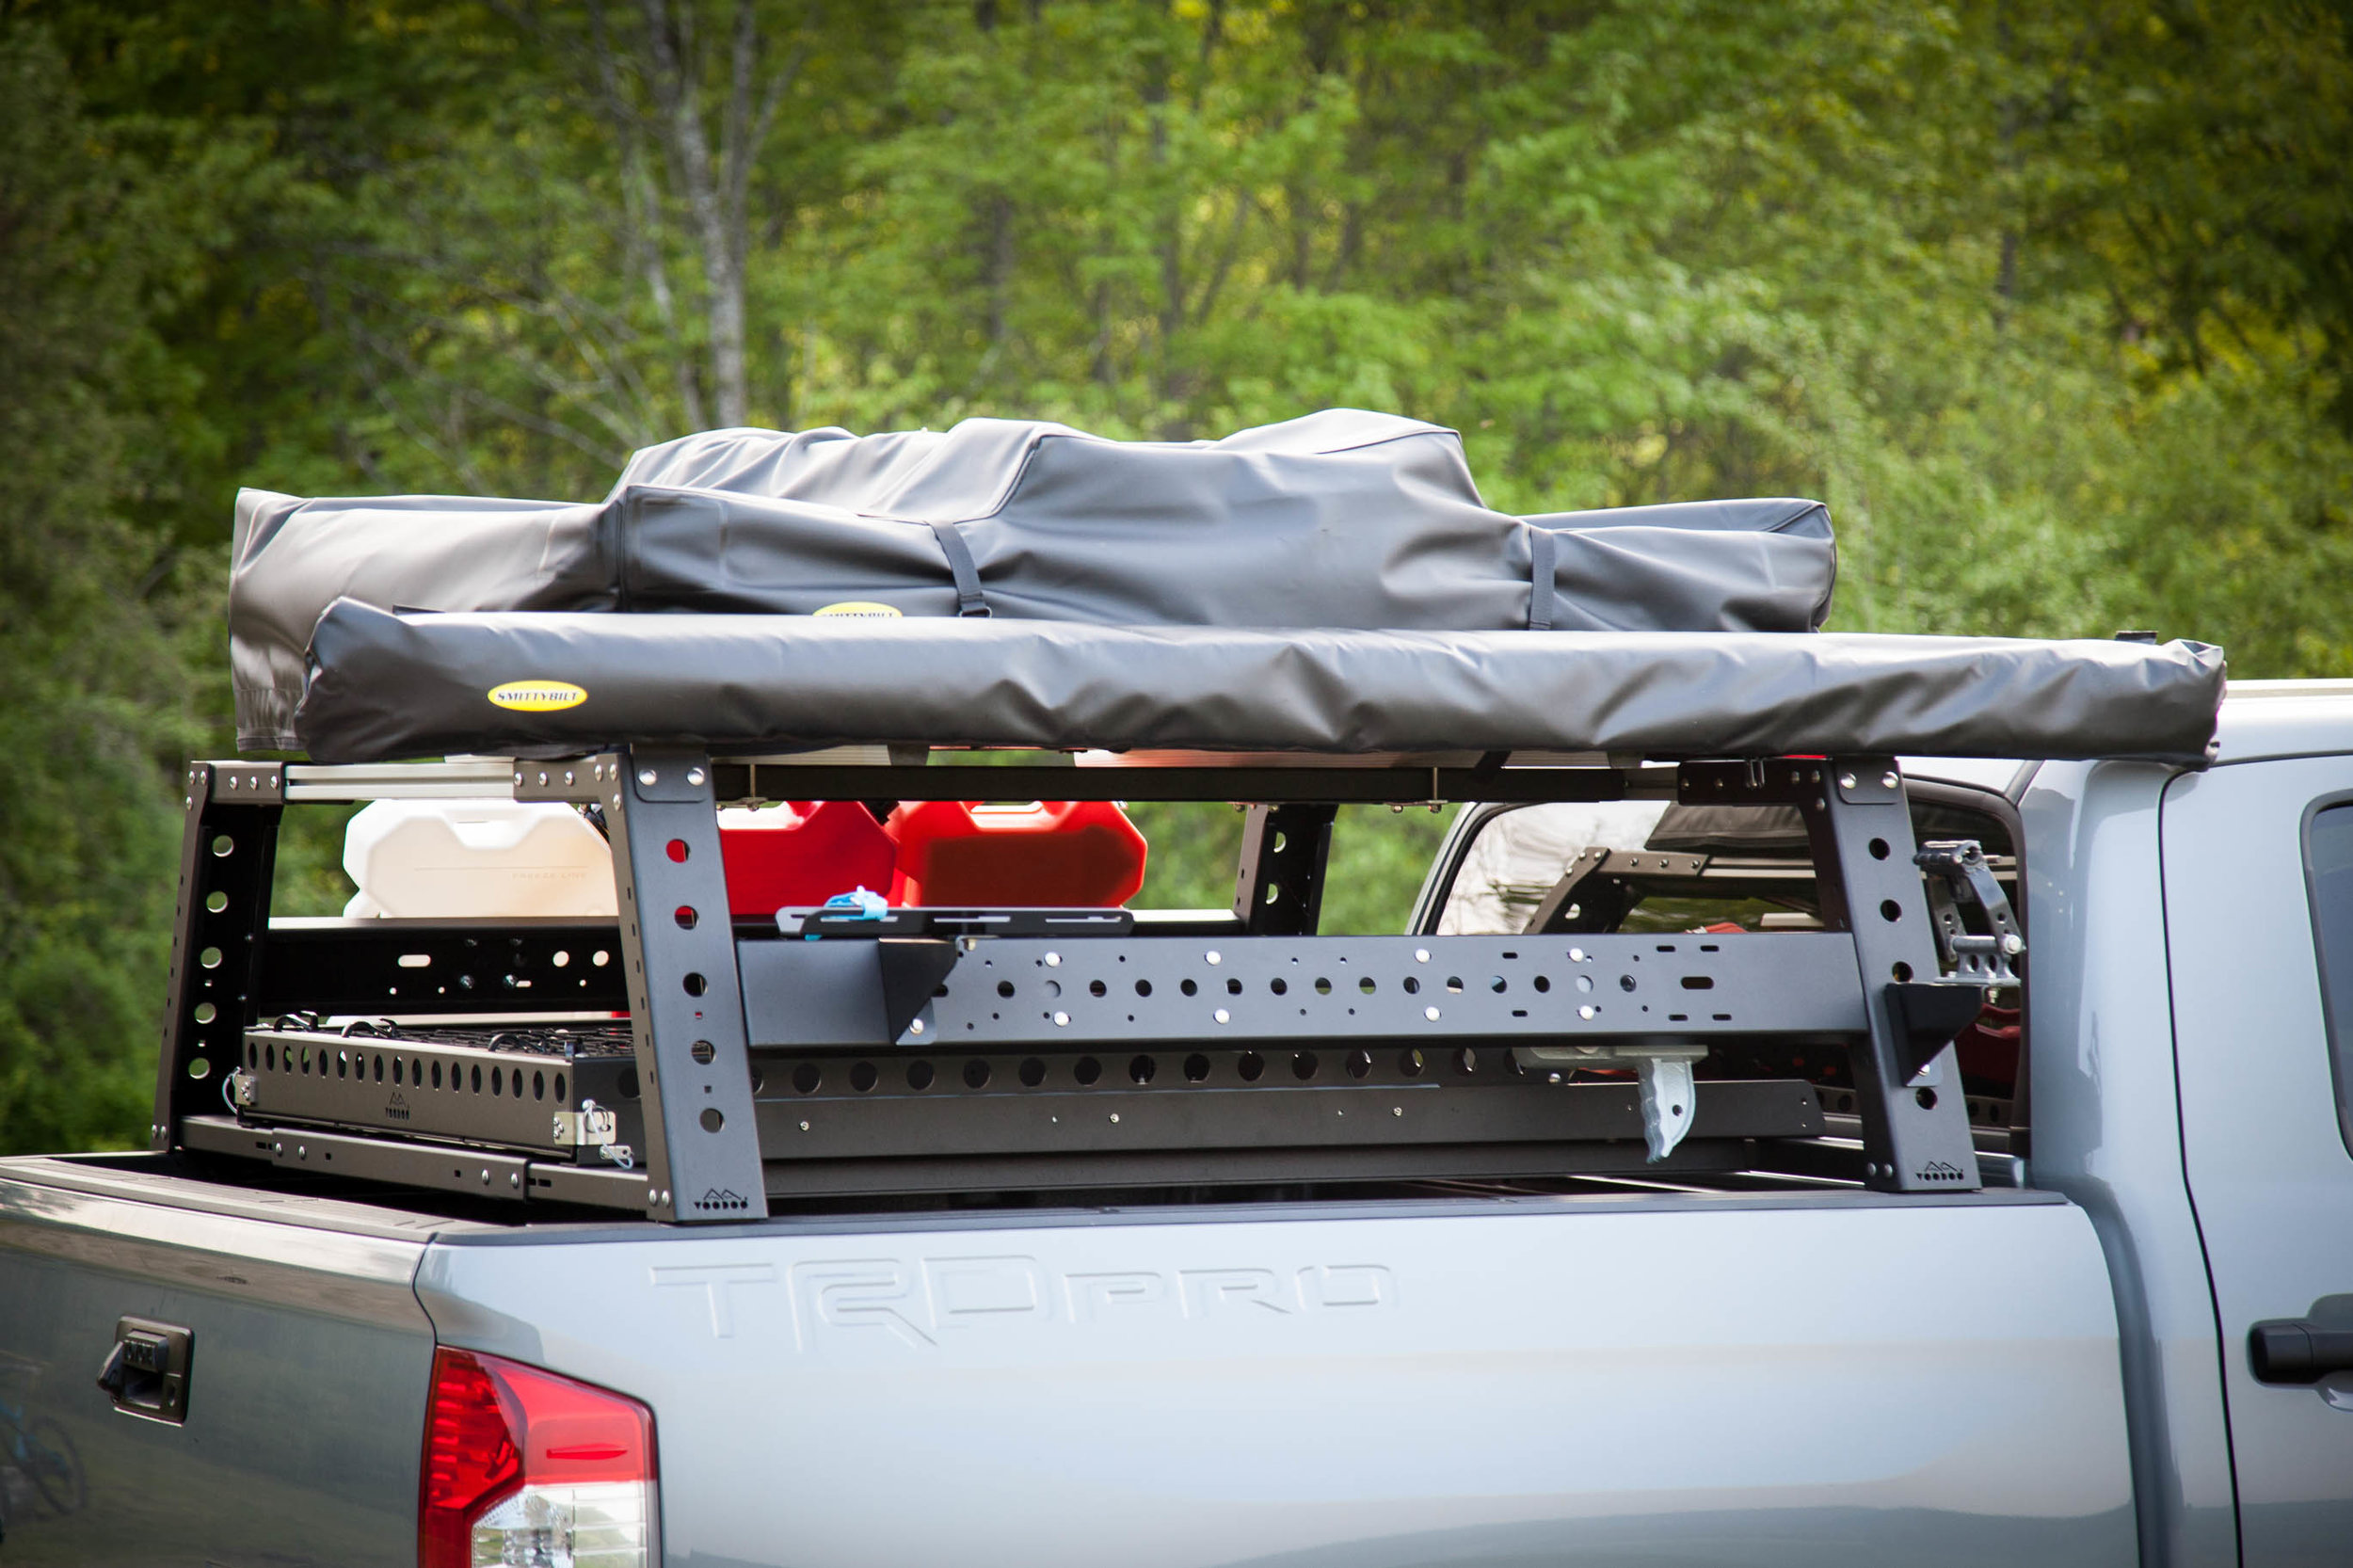 max modular steel max 18 high bed rack fits all toyota ford chevy ram and nissan trucks max modular truck bed racks